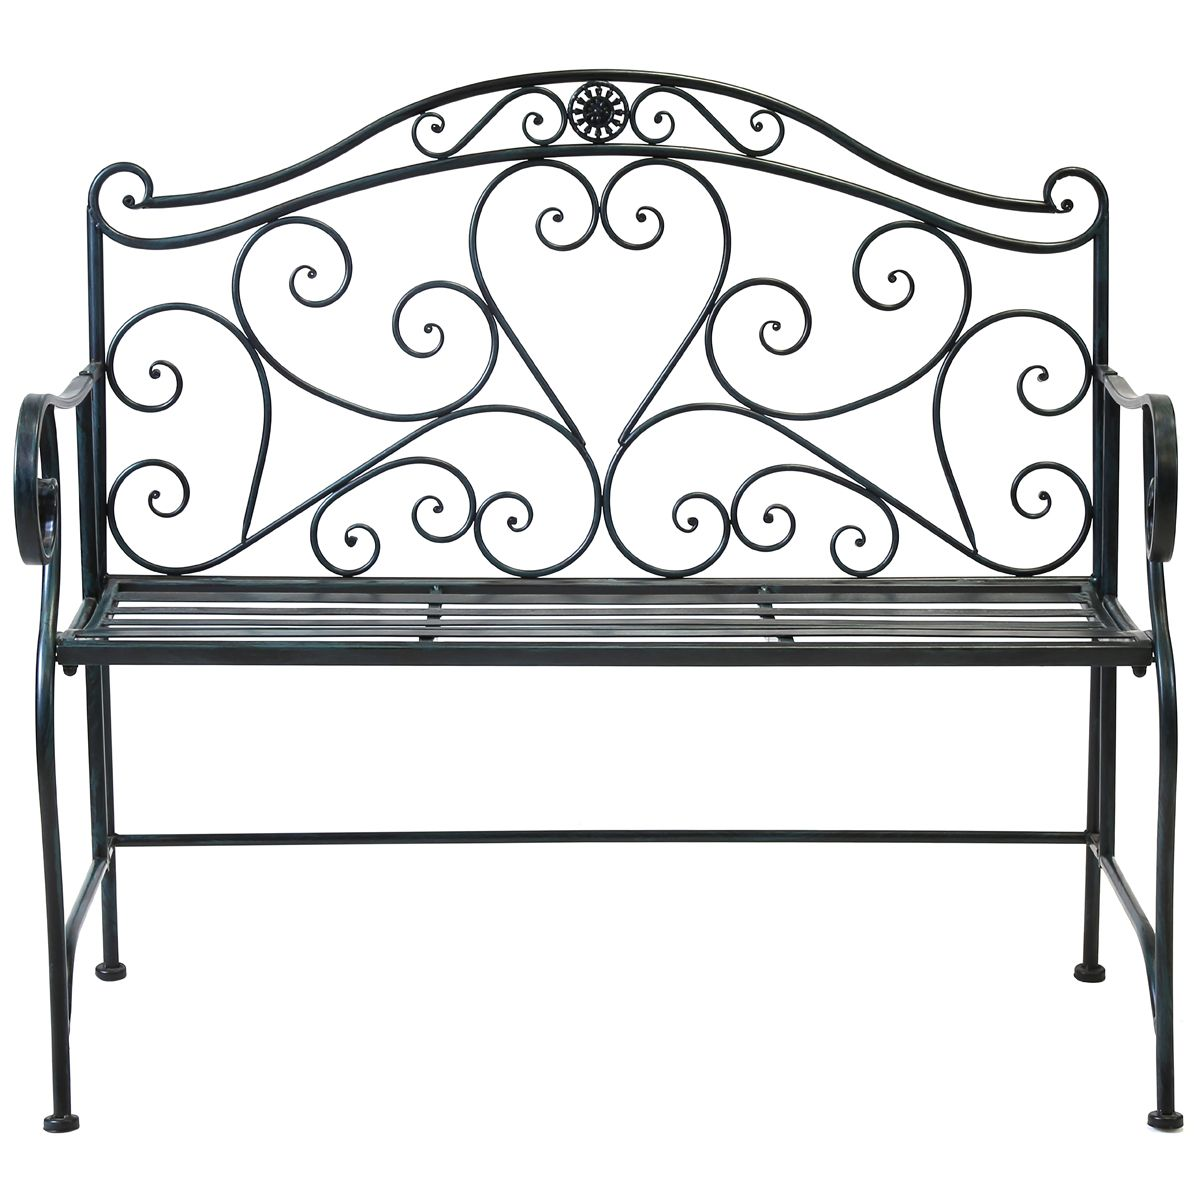 1200x1200 Bench Drawing Romantic For Free Download